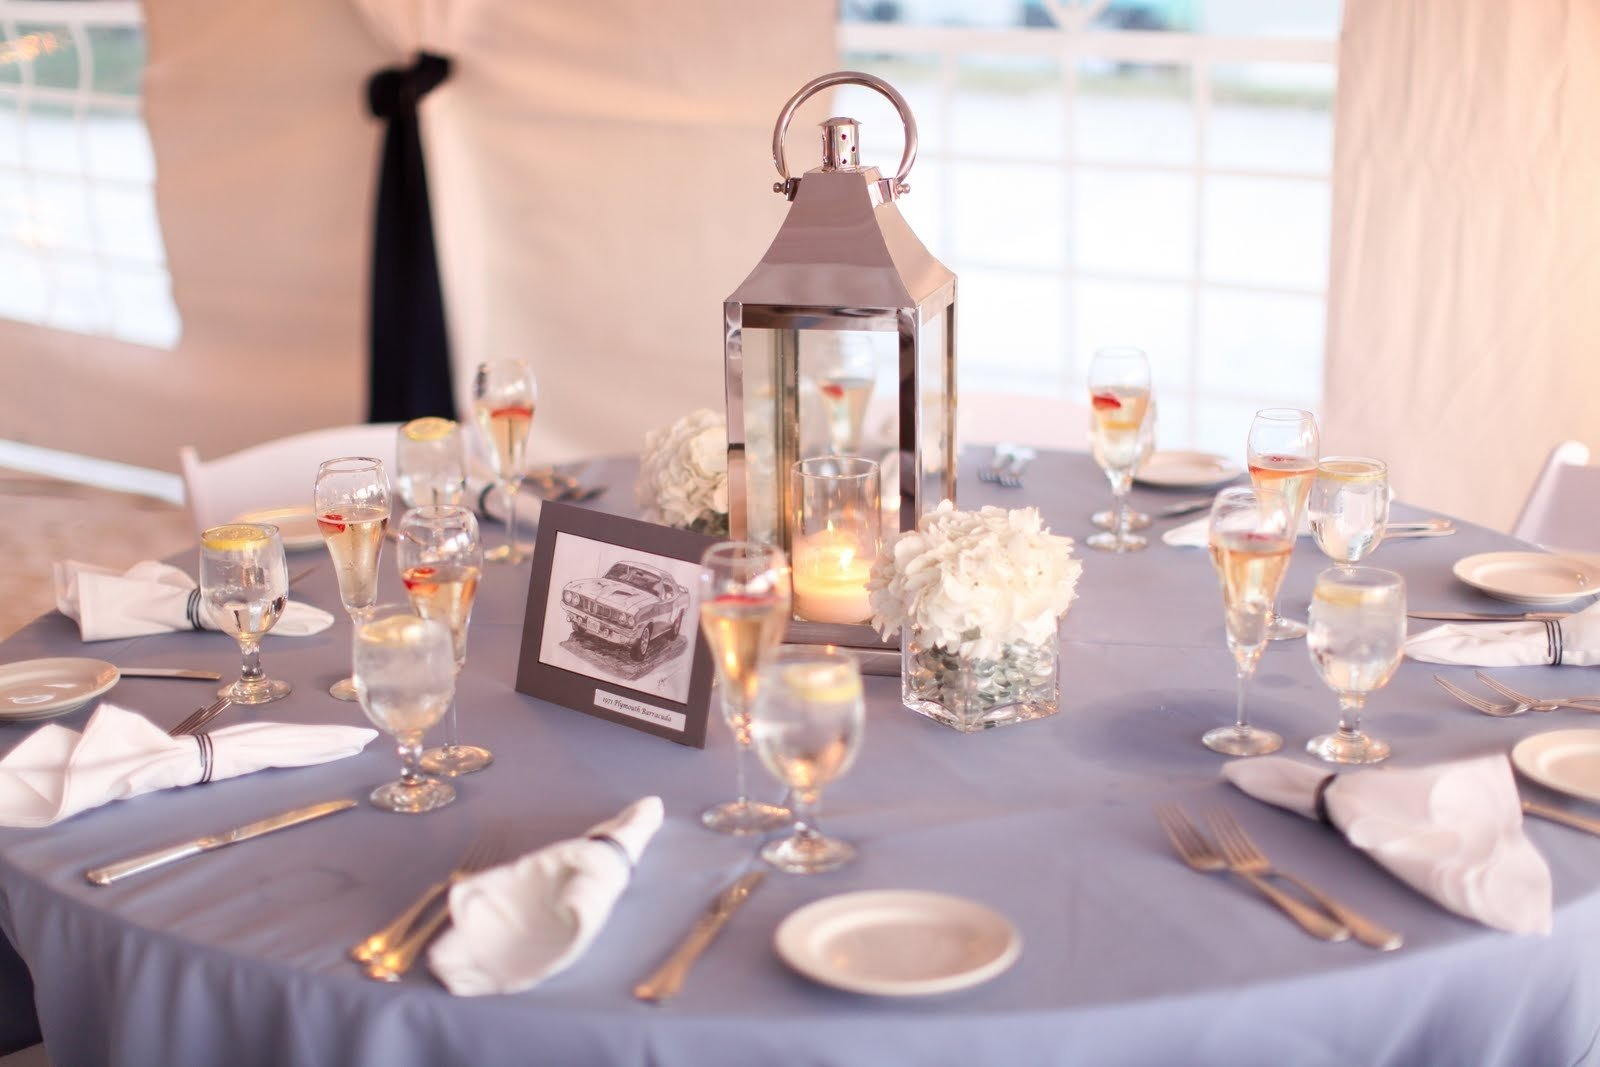 10 Most Recommended Wedding Table Centerpieces Ideas On A Budget